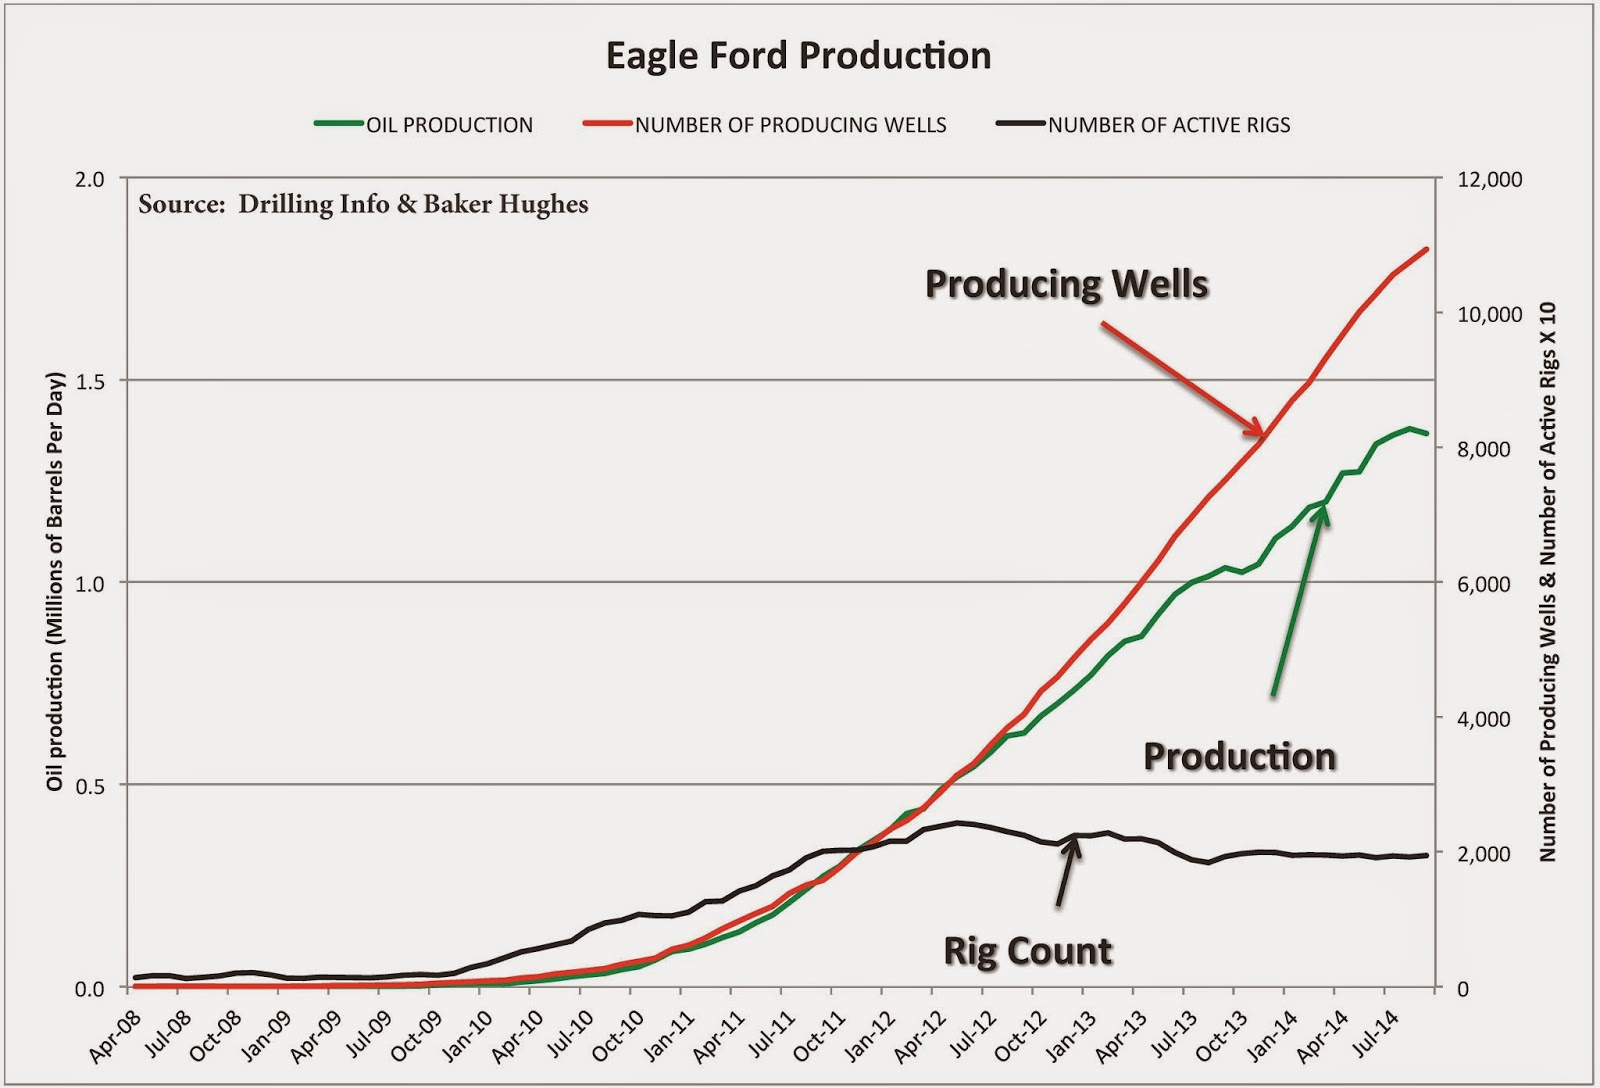 hight resolution of the next chart below shows eagle ford oil production the number of producing wells and the number of active drilling rigs versus time